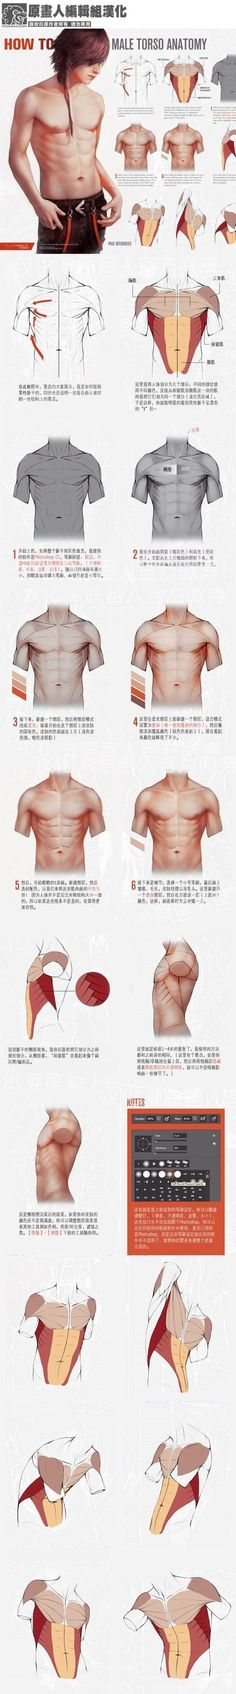 27 Super Ideas For Drawing Reference Poses Anatomy Animation Body Reference, Anatomy Reference, Design Reference, Drawing Reference, Body Anatomy, Anatomy Drawing, Human Anatomy, Muscle Anatomy, Anatomy Male